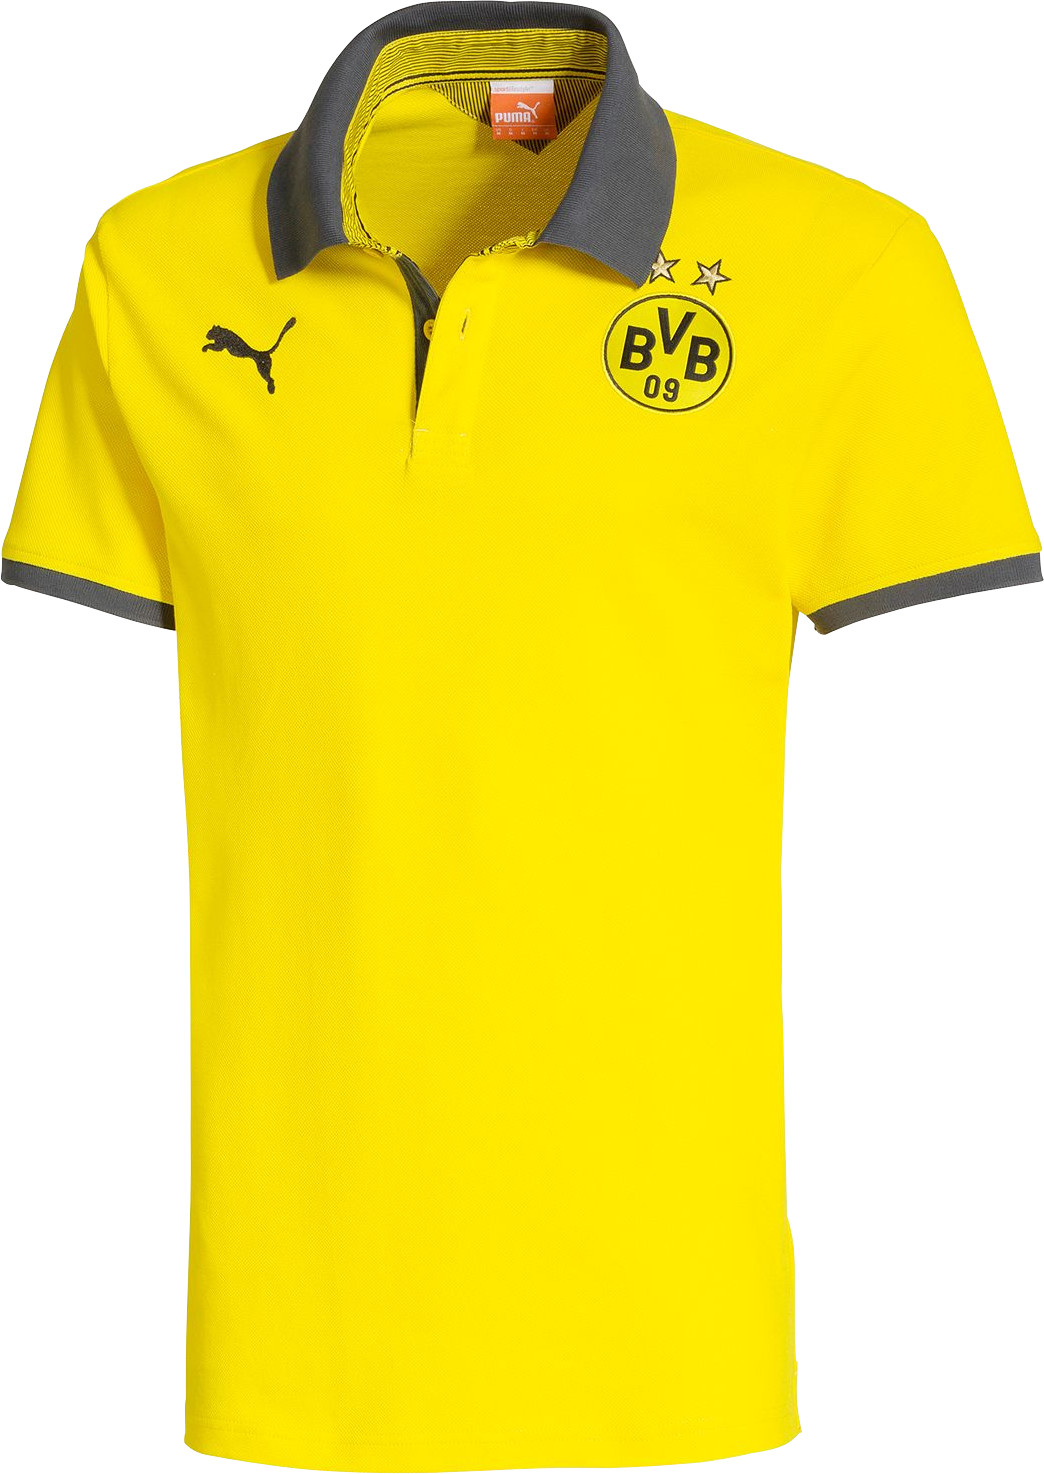 Puma BVB T7 Polo 2014/2015 cyber yellow